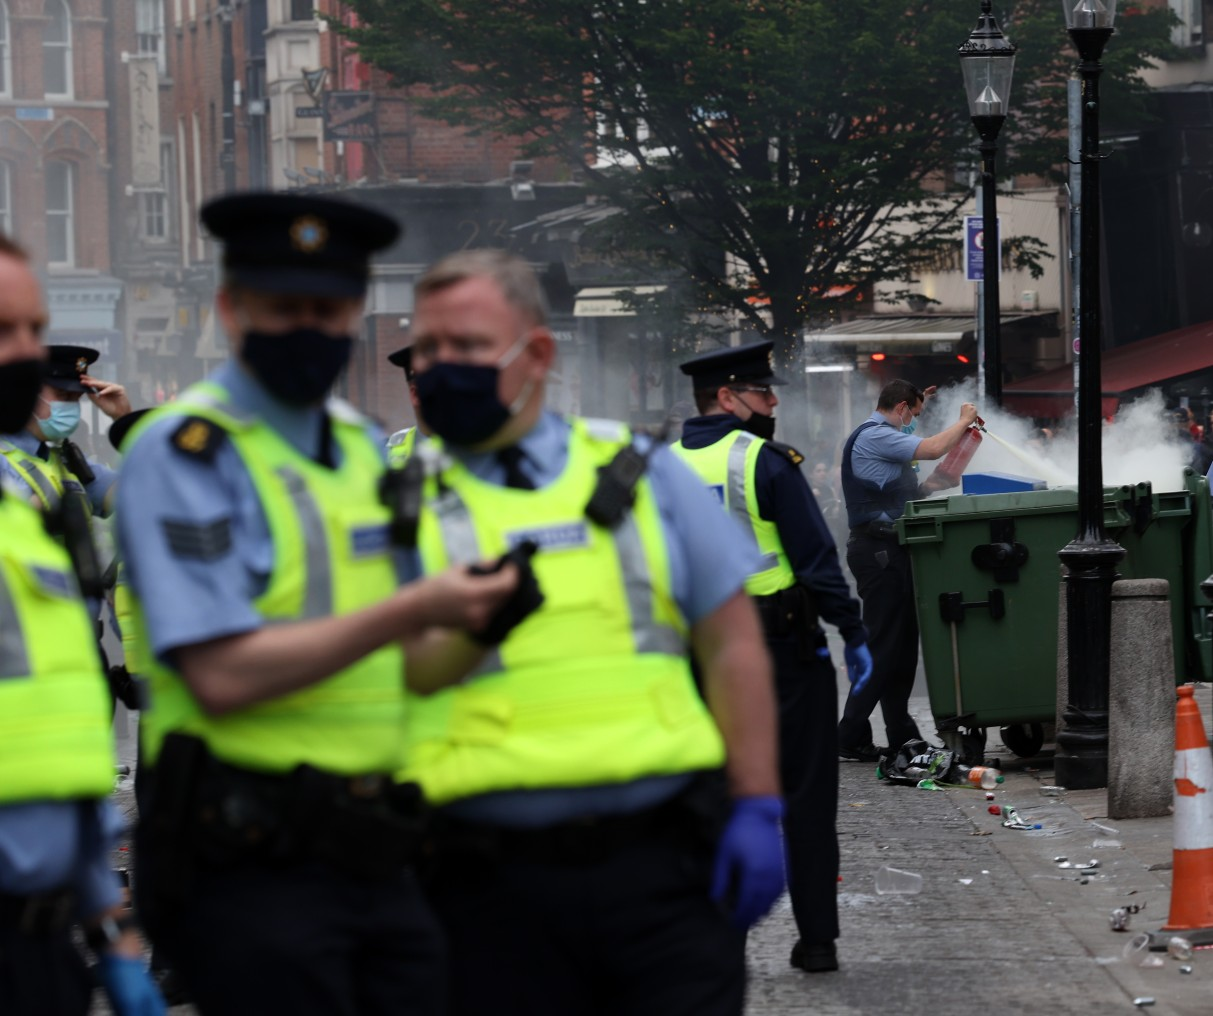 Pictured Members of the An Garda Siochana extinguish a small bin fire on Saturday Night in Dublin